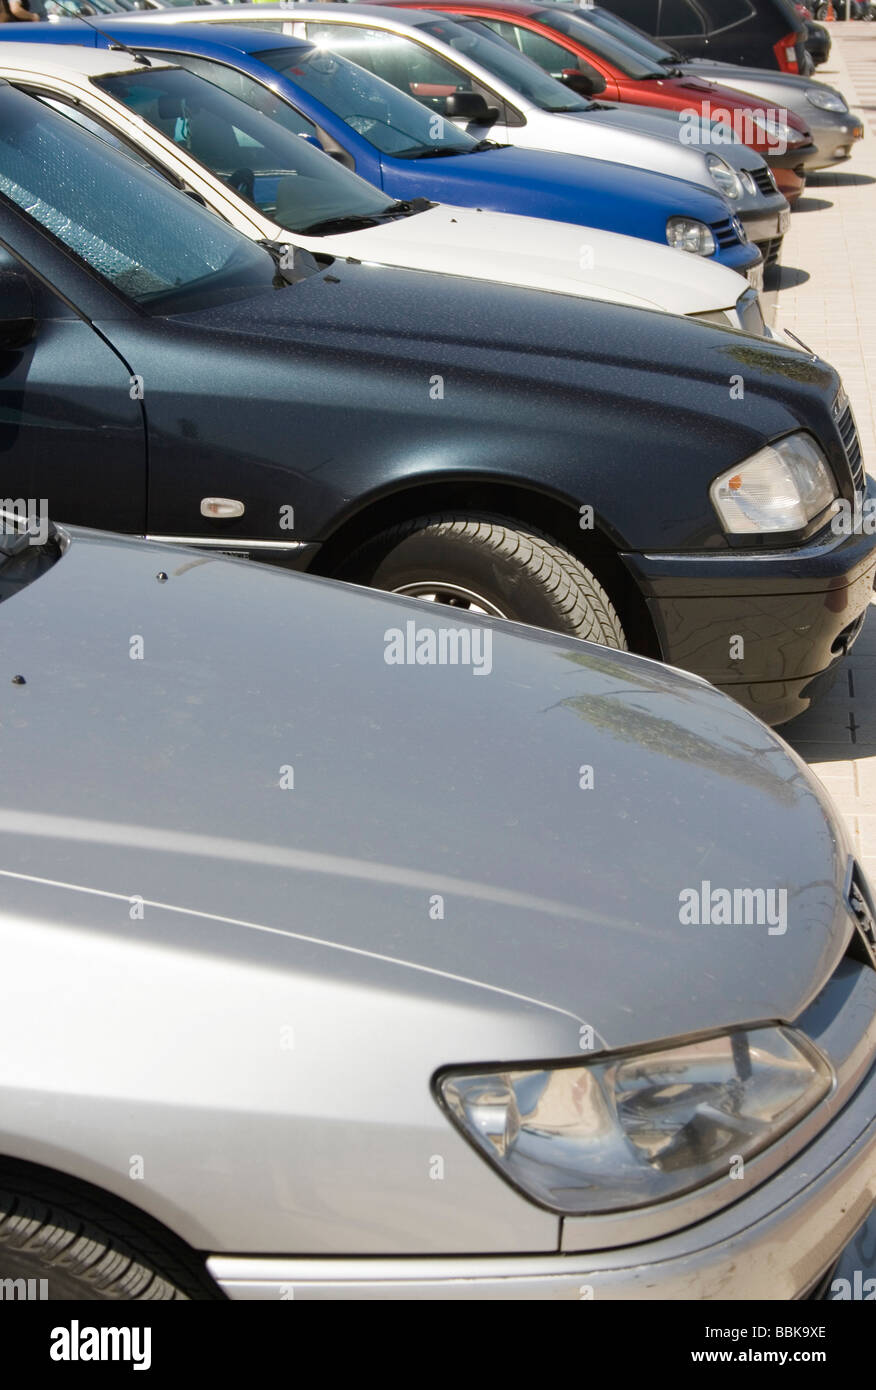 Row of parked cars - Stock Image